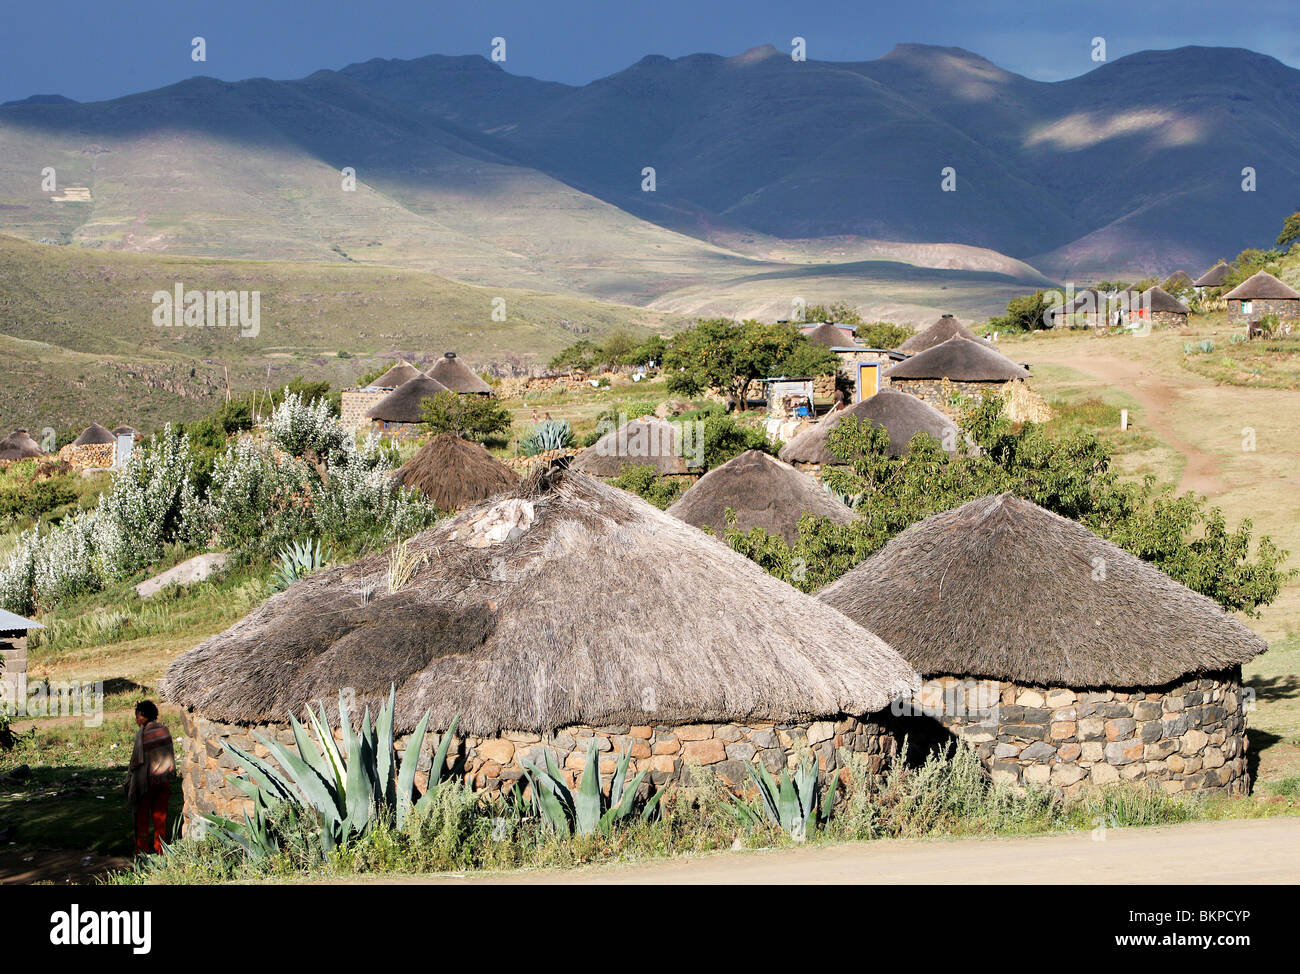 Traditional Basotho rondoval house made of stone with a thatch roof in Lesotho, Southern Africa - Stock Image